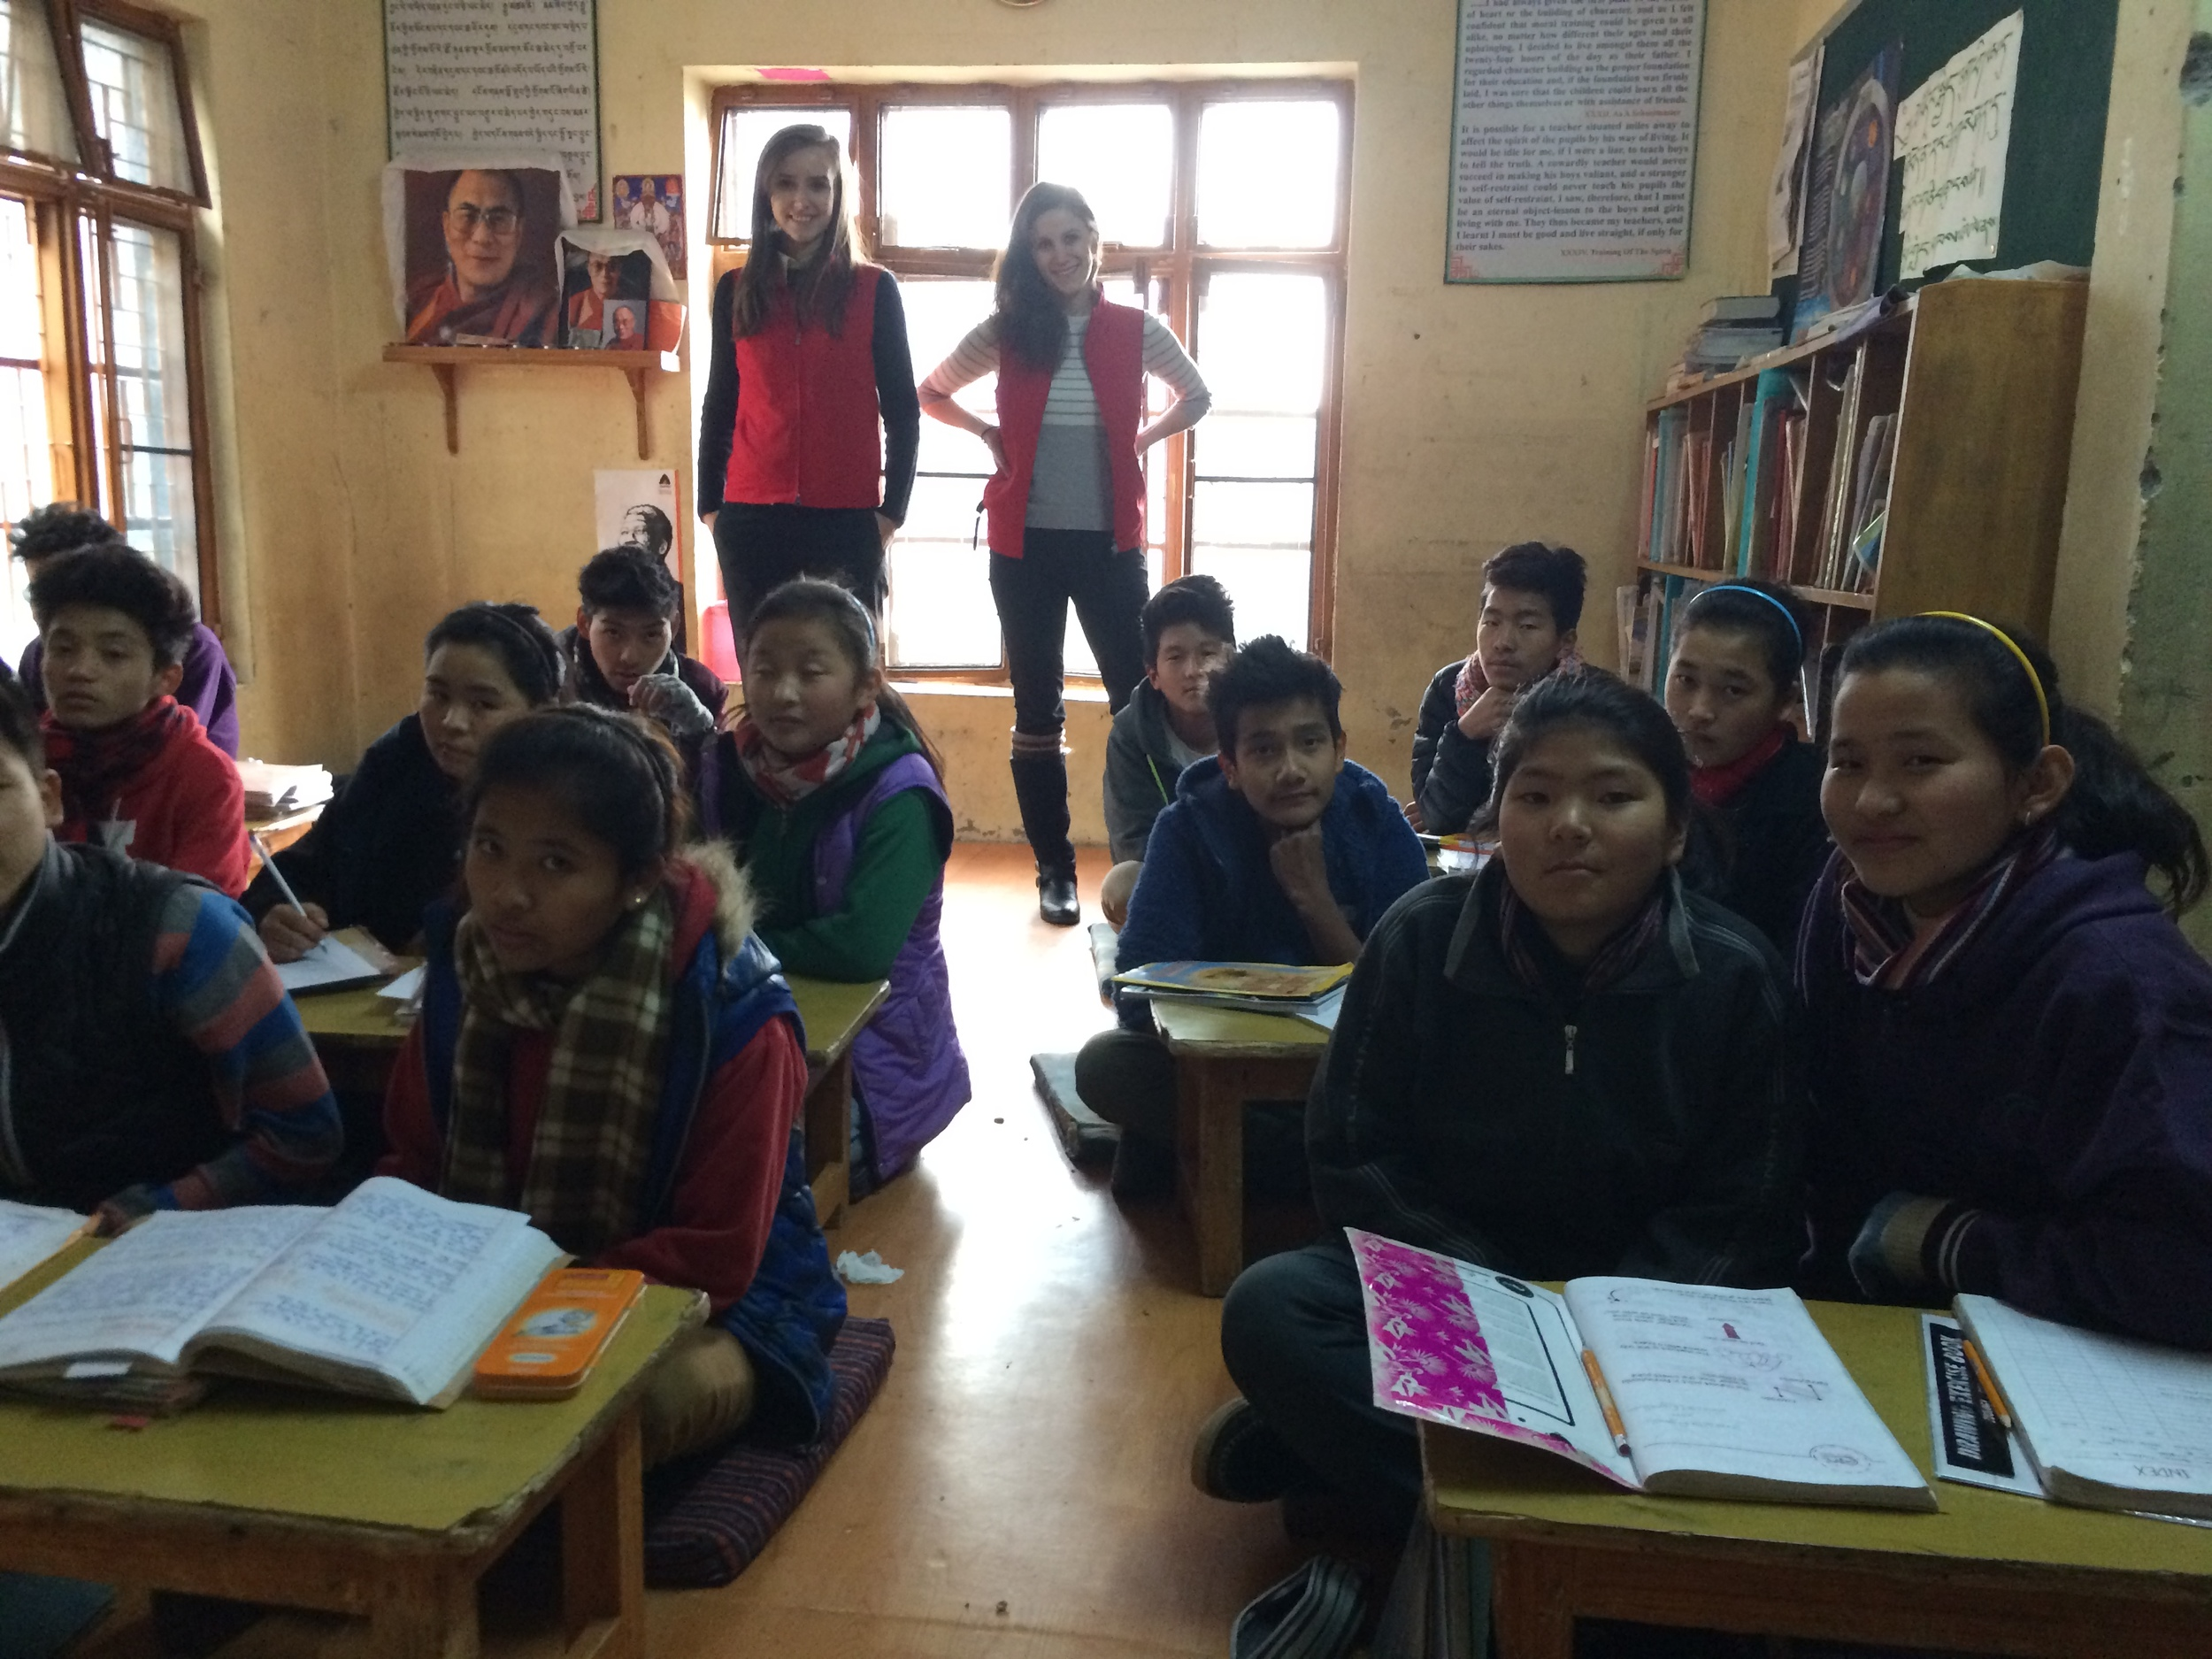 Tibetan students sitting in rows. At the back are Maia Mosse (left center, background) and Diana Saville (center, background)